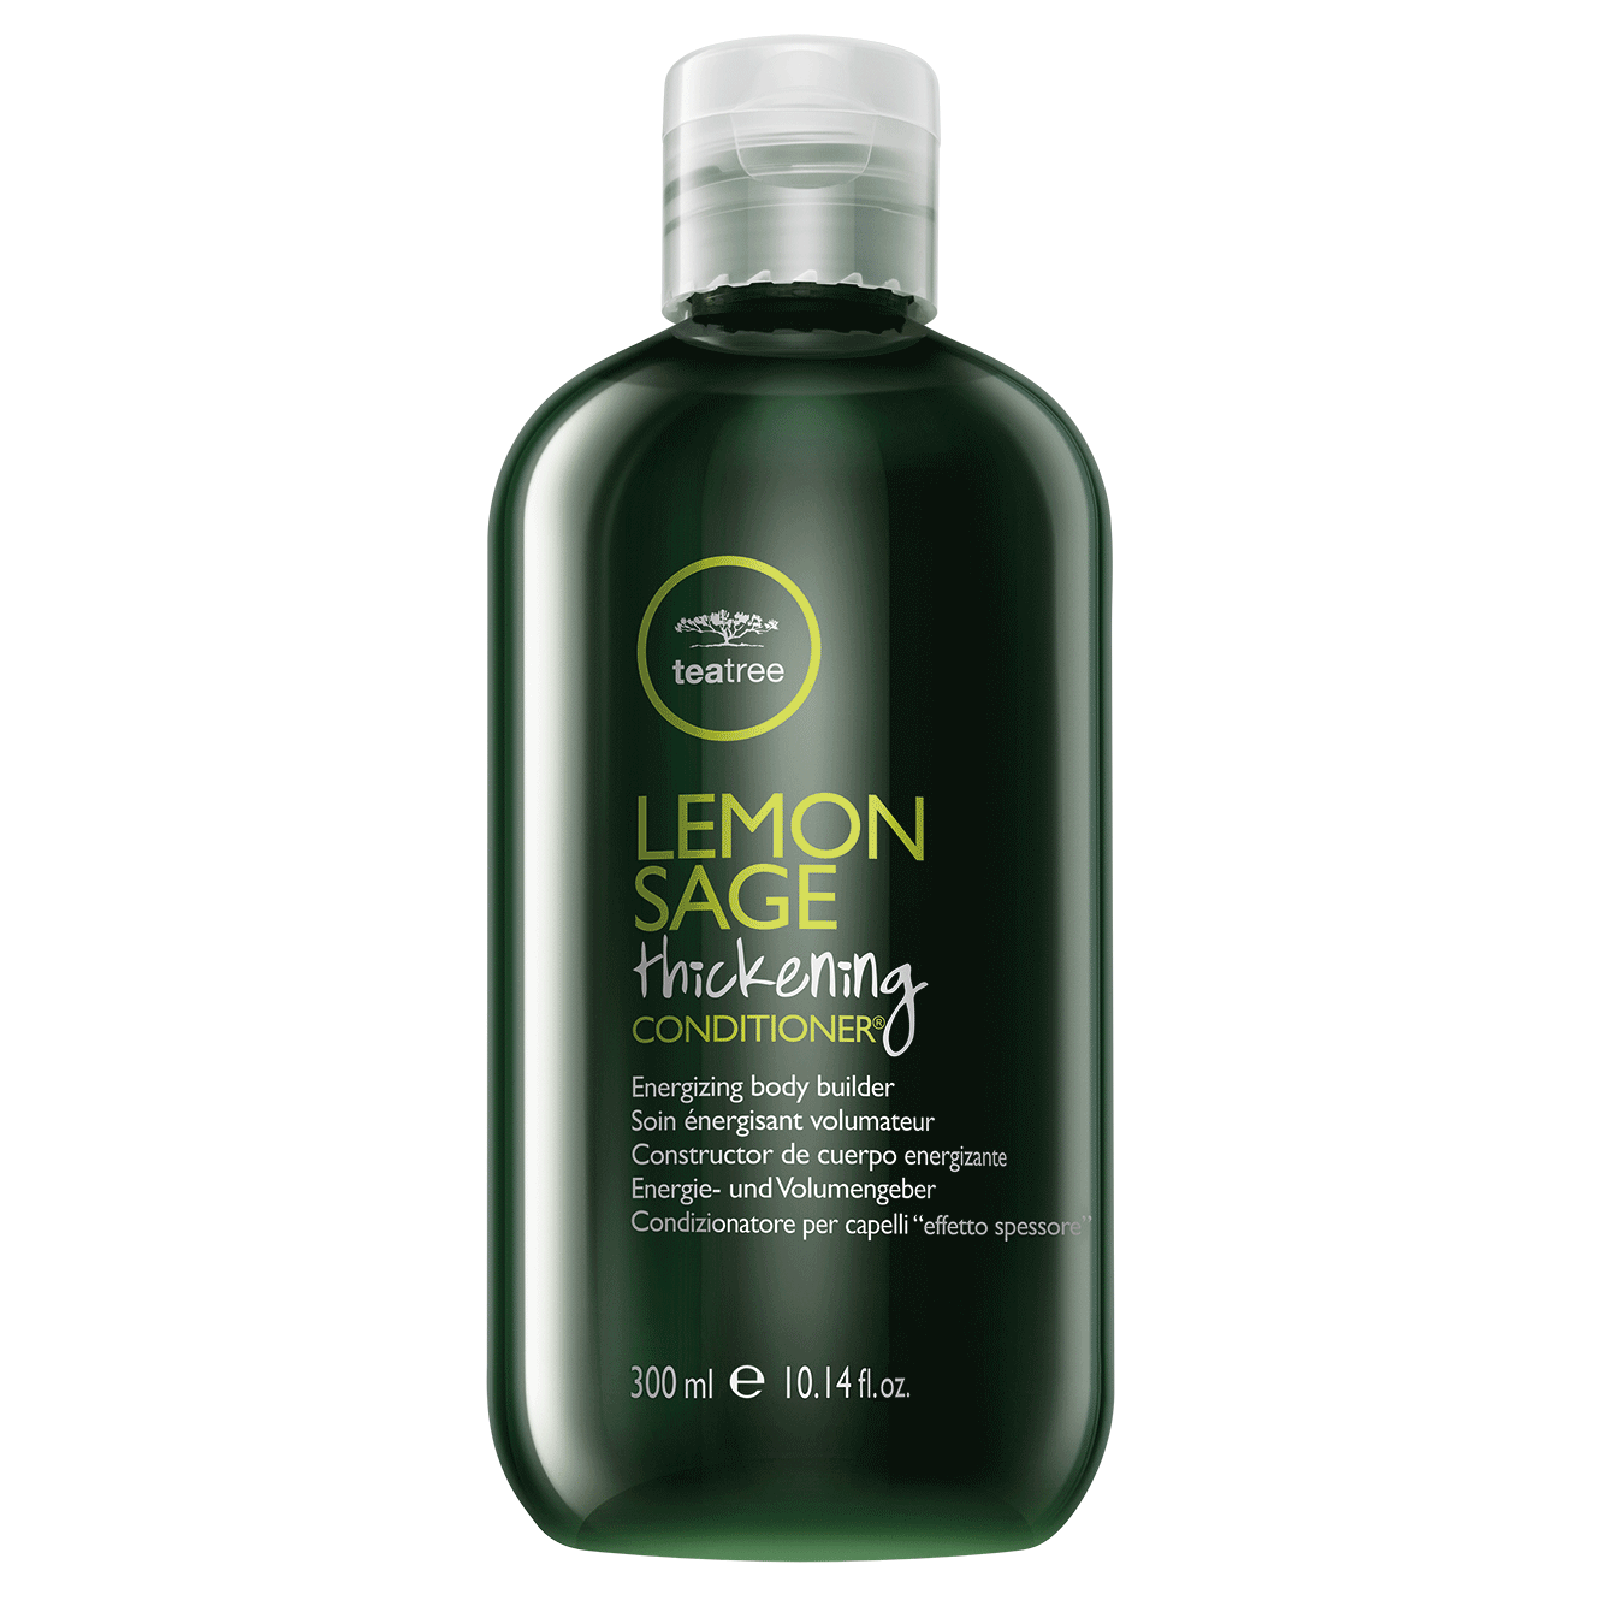 Tea Tree Lemon Sage - Thickening Conditioner